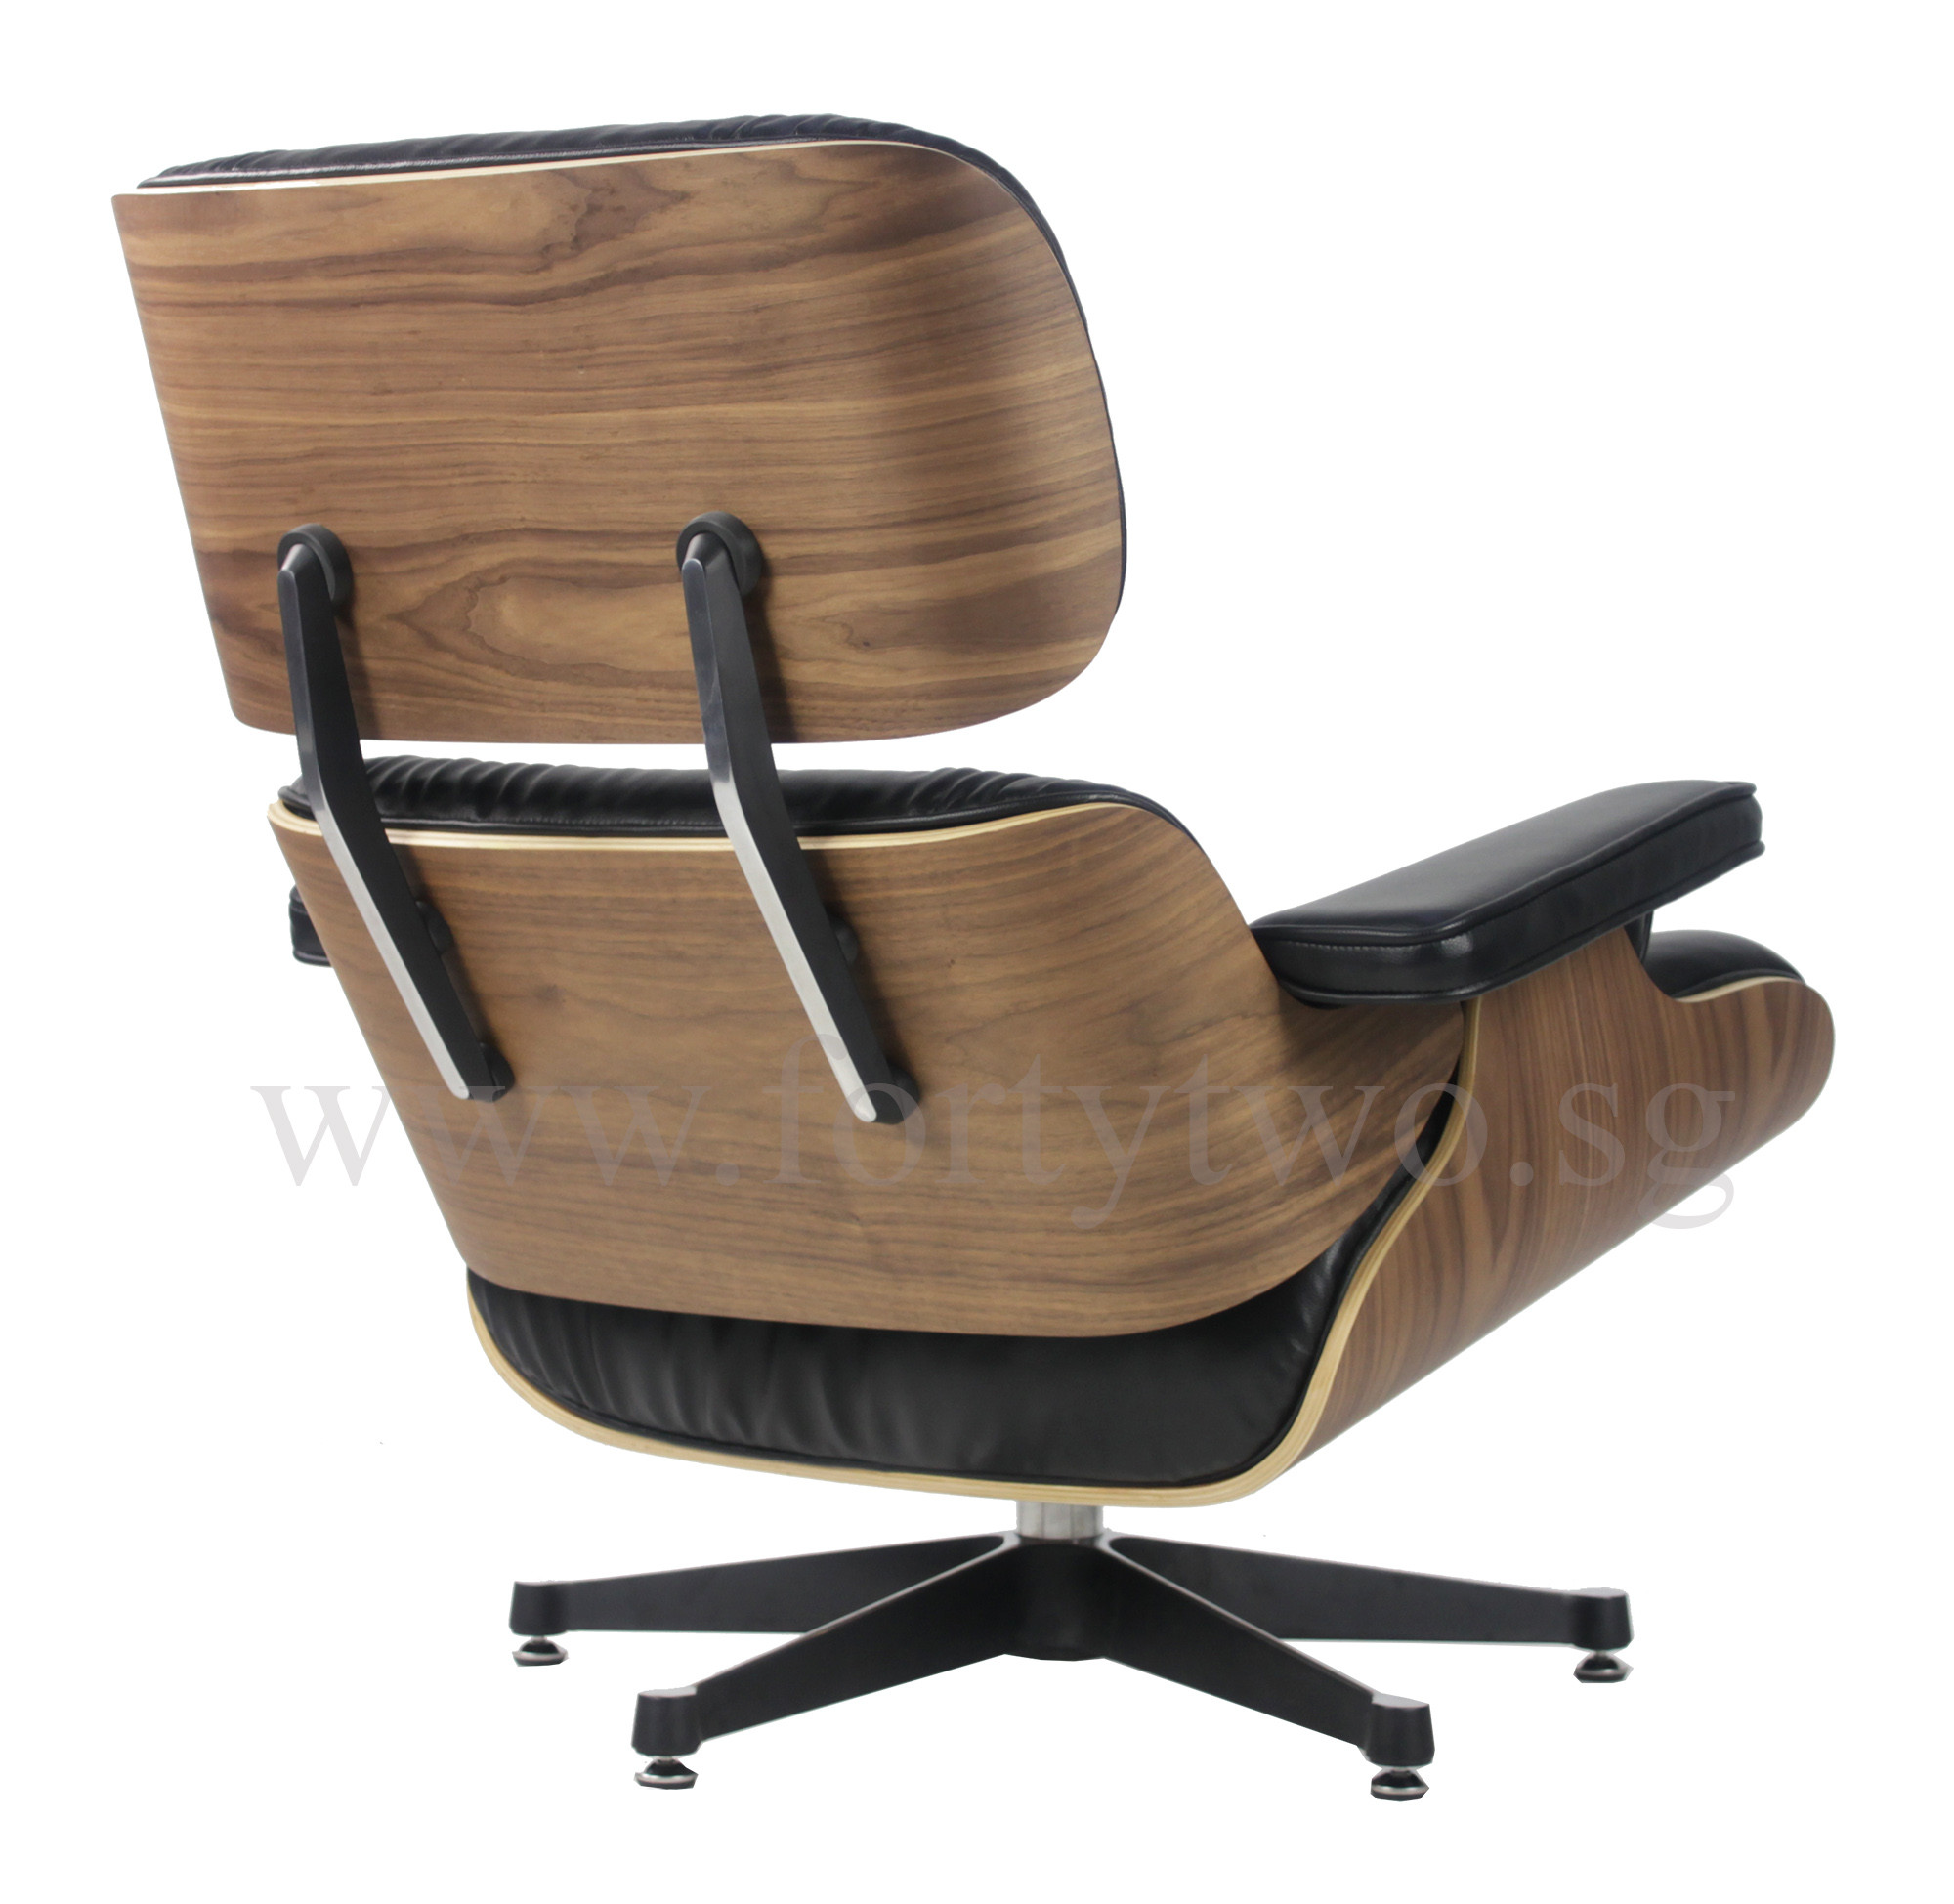 As is clearance designer replica eames lounge chair black in32976